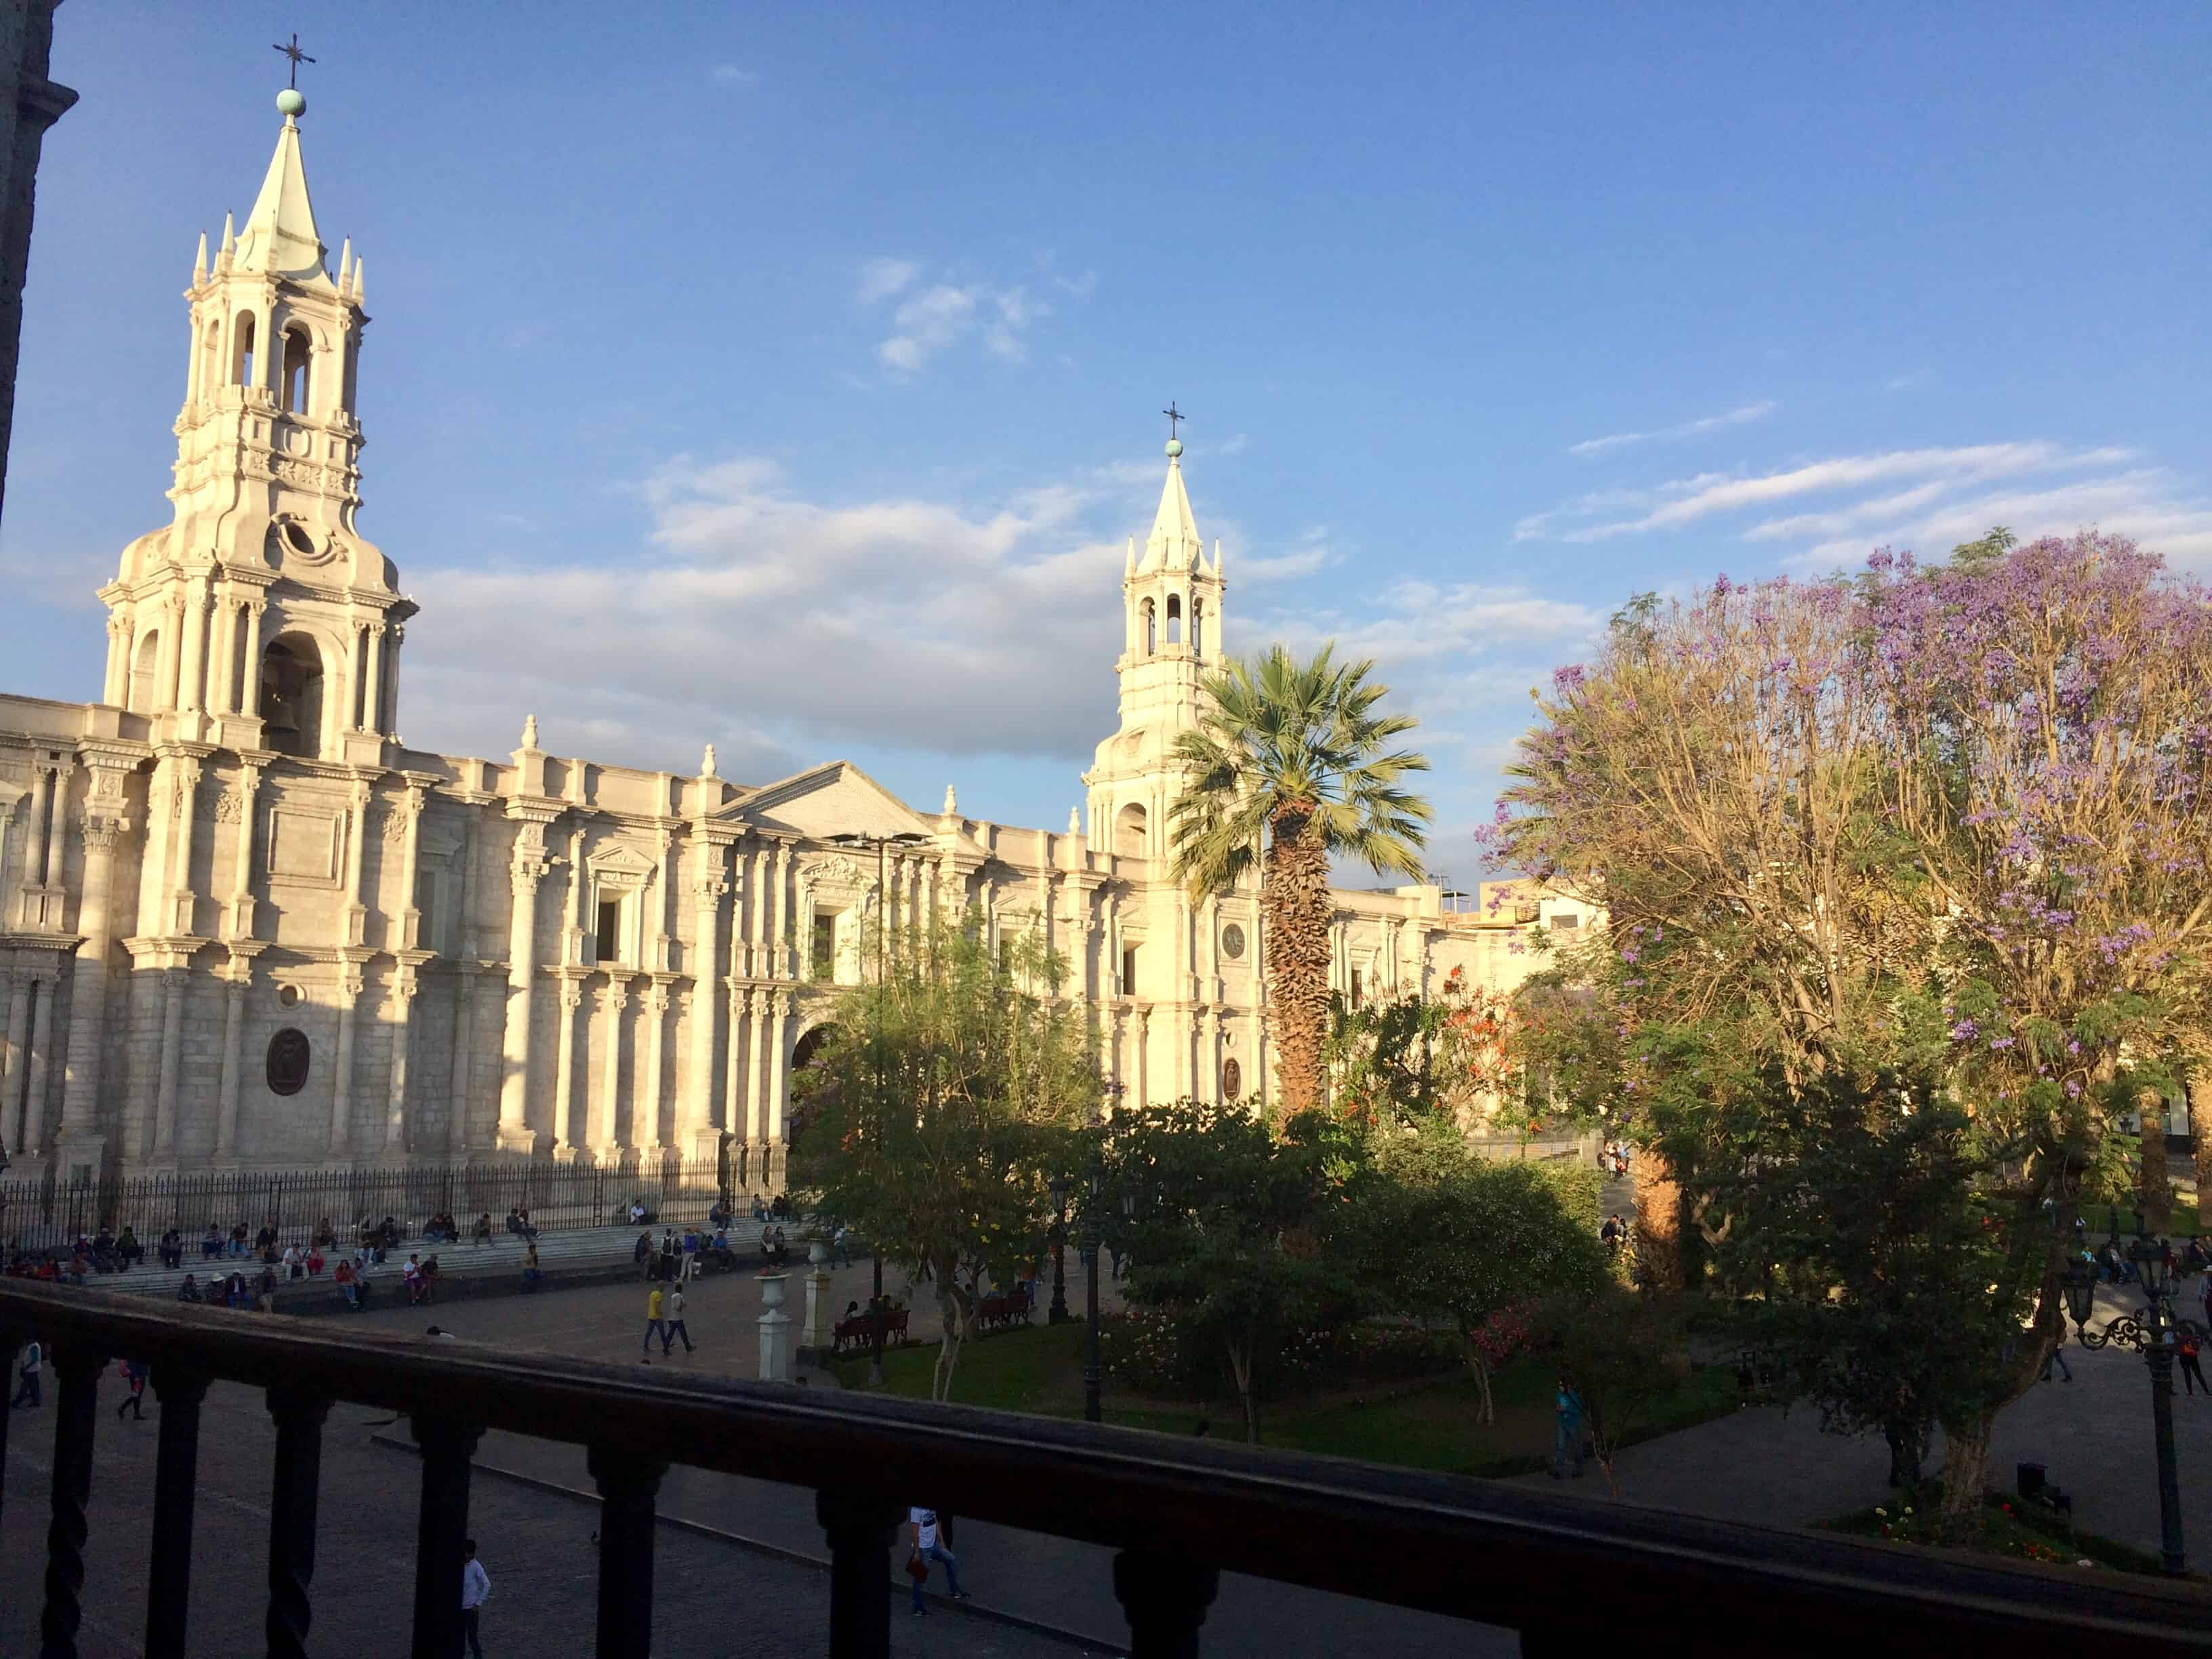 Place-arequipa-perou-palmier-cathedrale